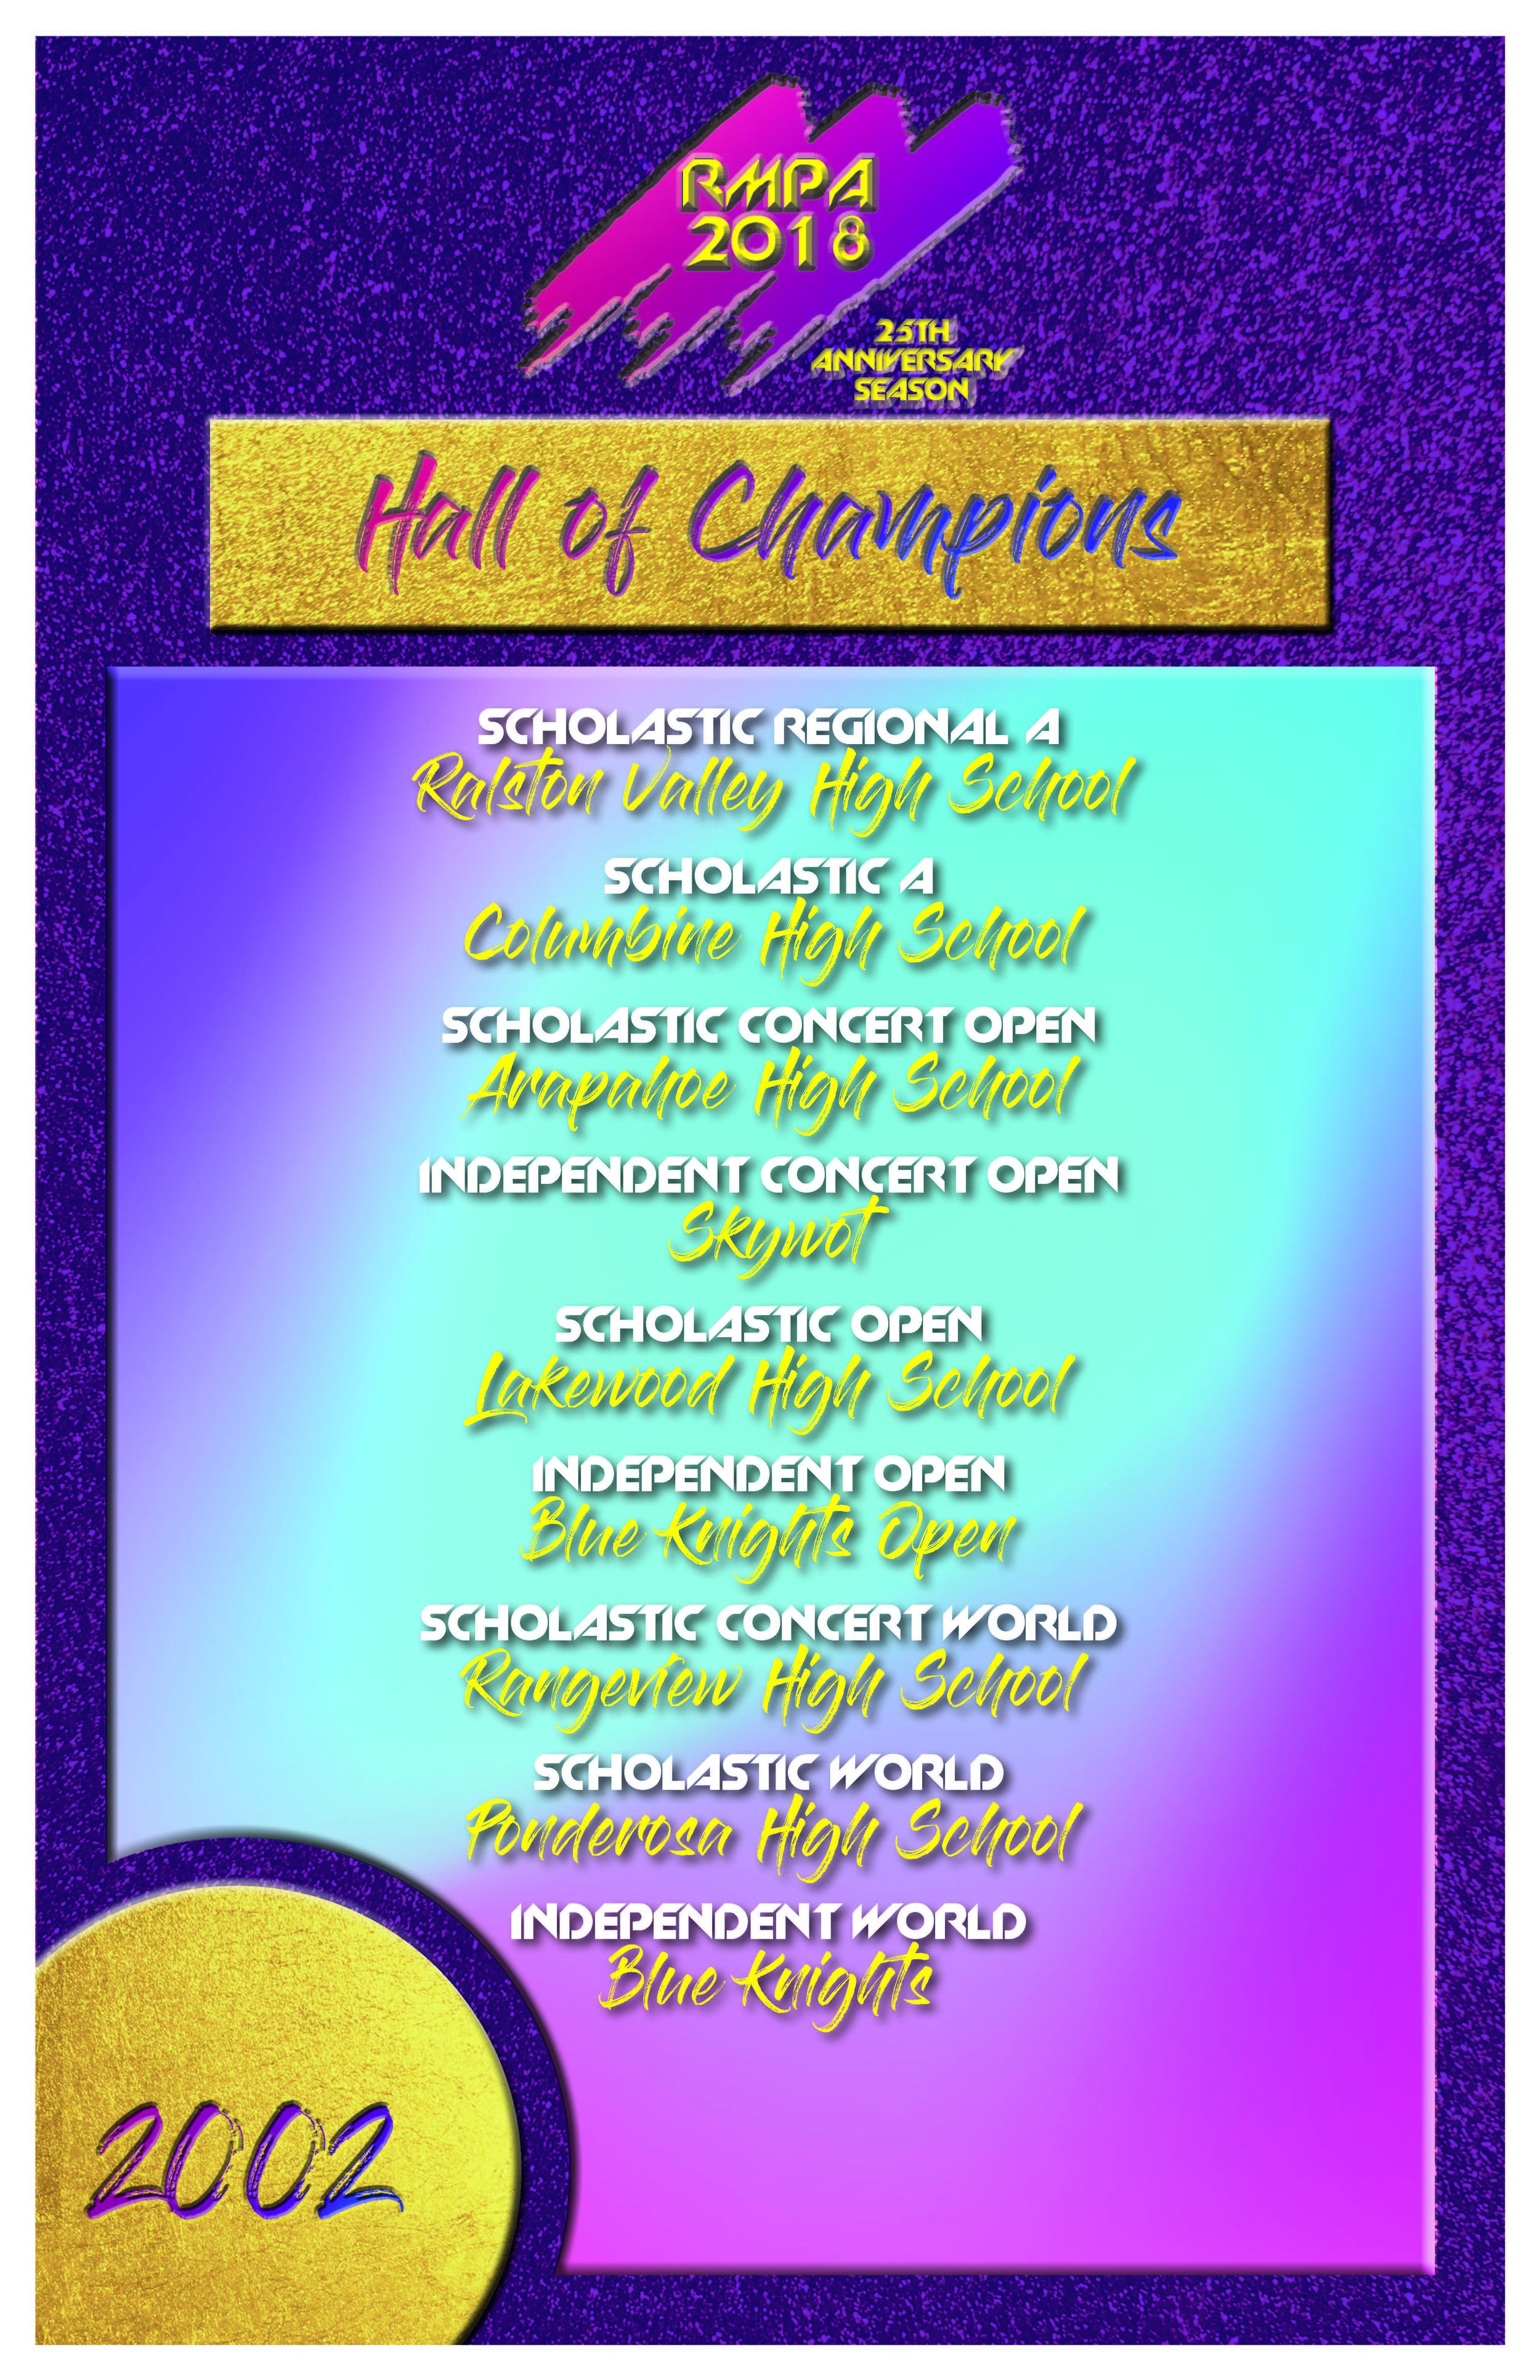 Hall of Champions Posters_Page_10.jpg